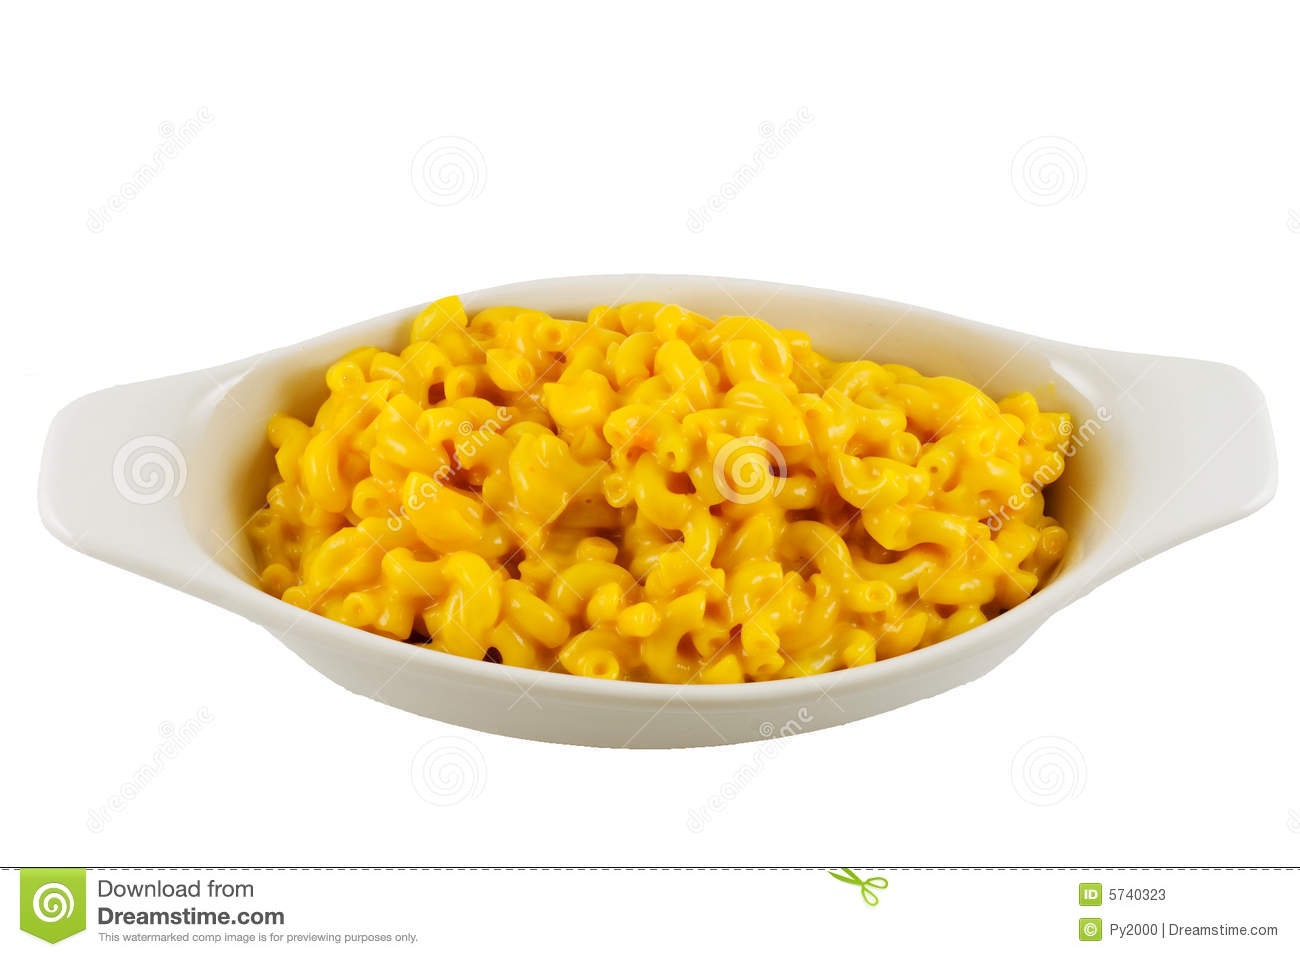 Macaroni And Cheese Clipart Black And White Cheese macaroni